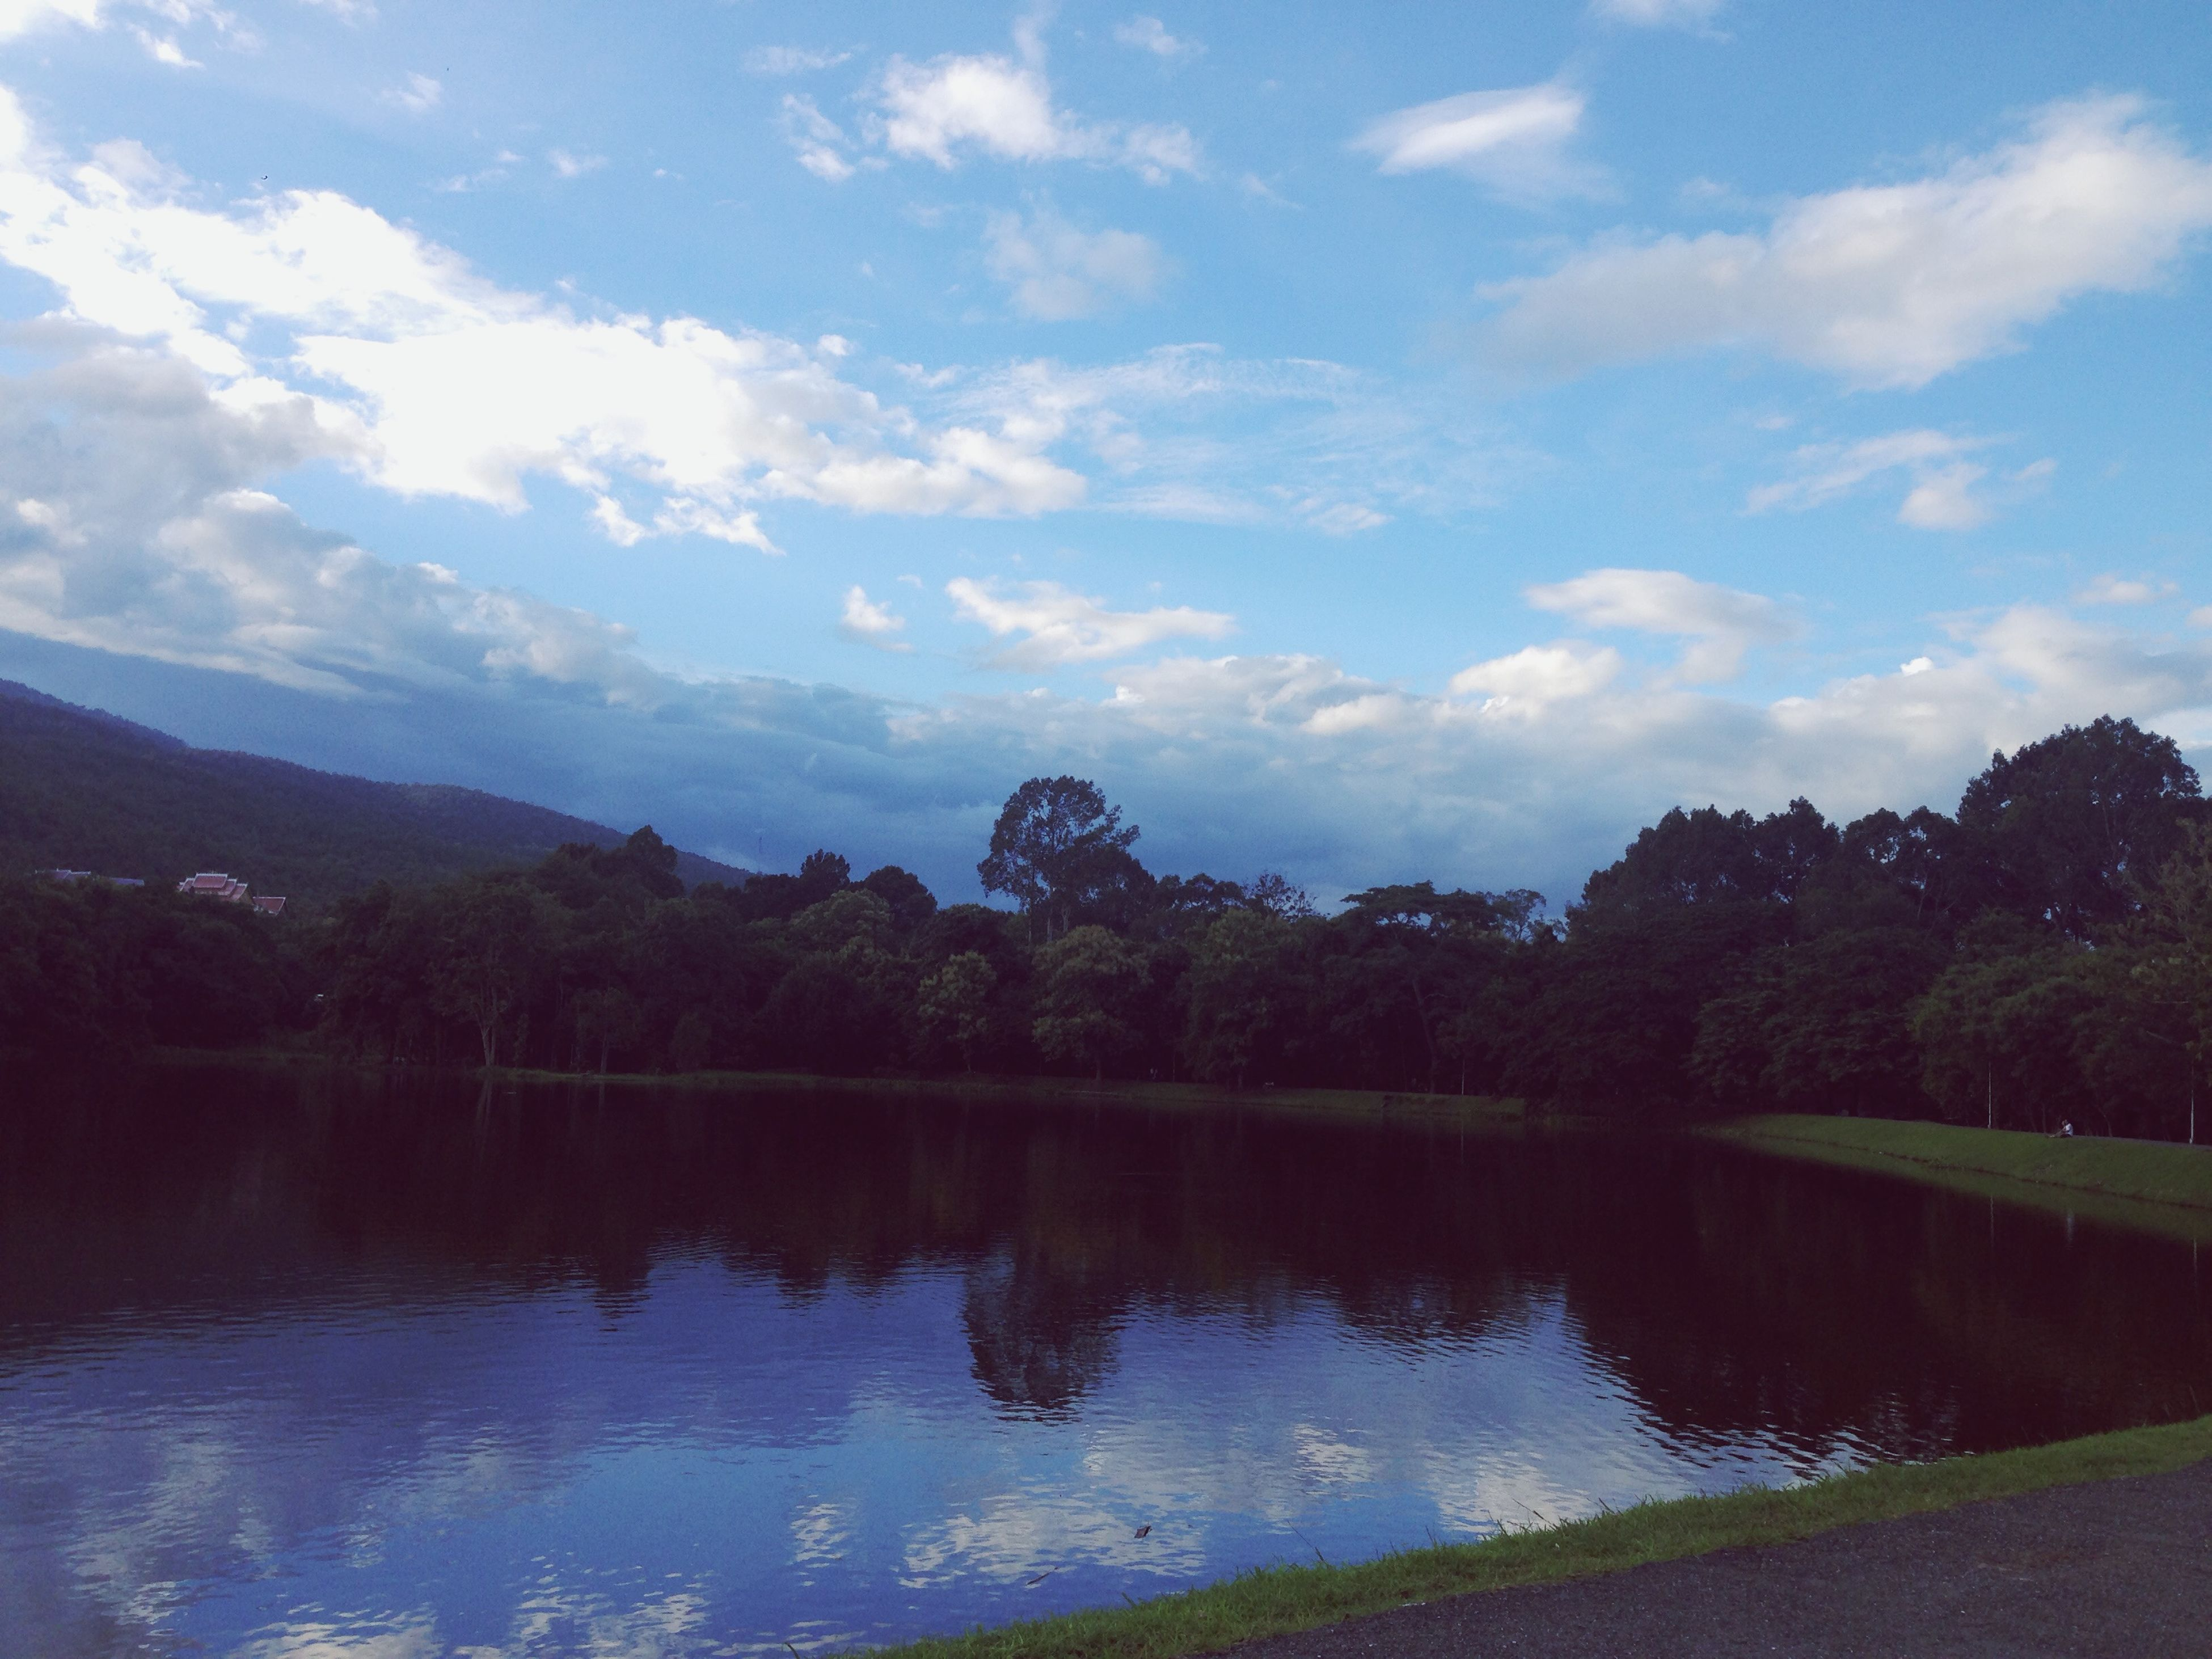 water, tree, reflection, sky, tranquil scene, lake, tranquility, scenics, beauty in nature, cloud - sky, nature, river, cloud, waterfront, mountain, standing water, idyllic, calm, landscape, outdoors